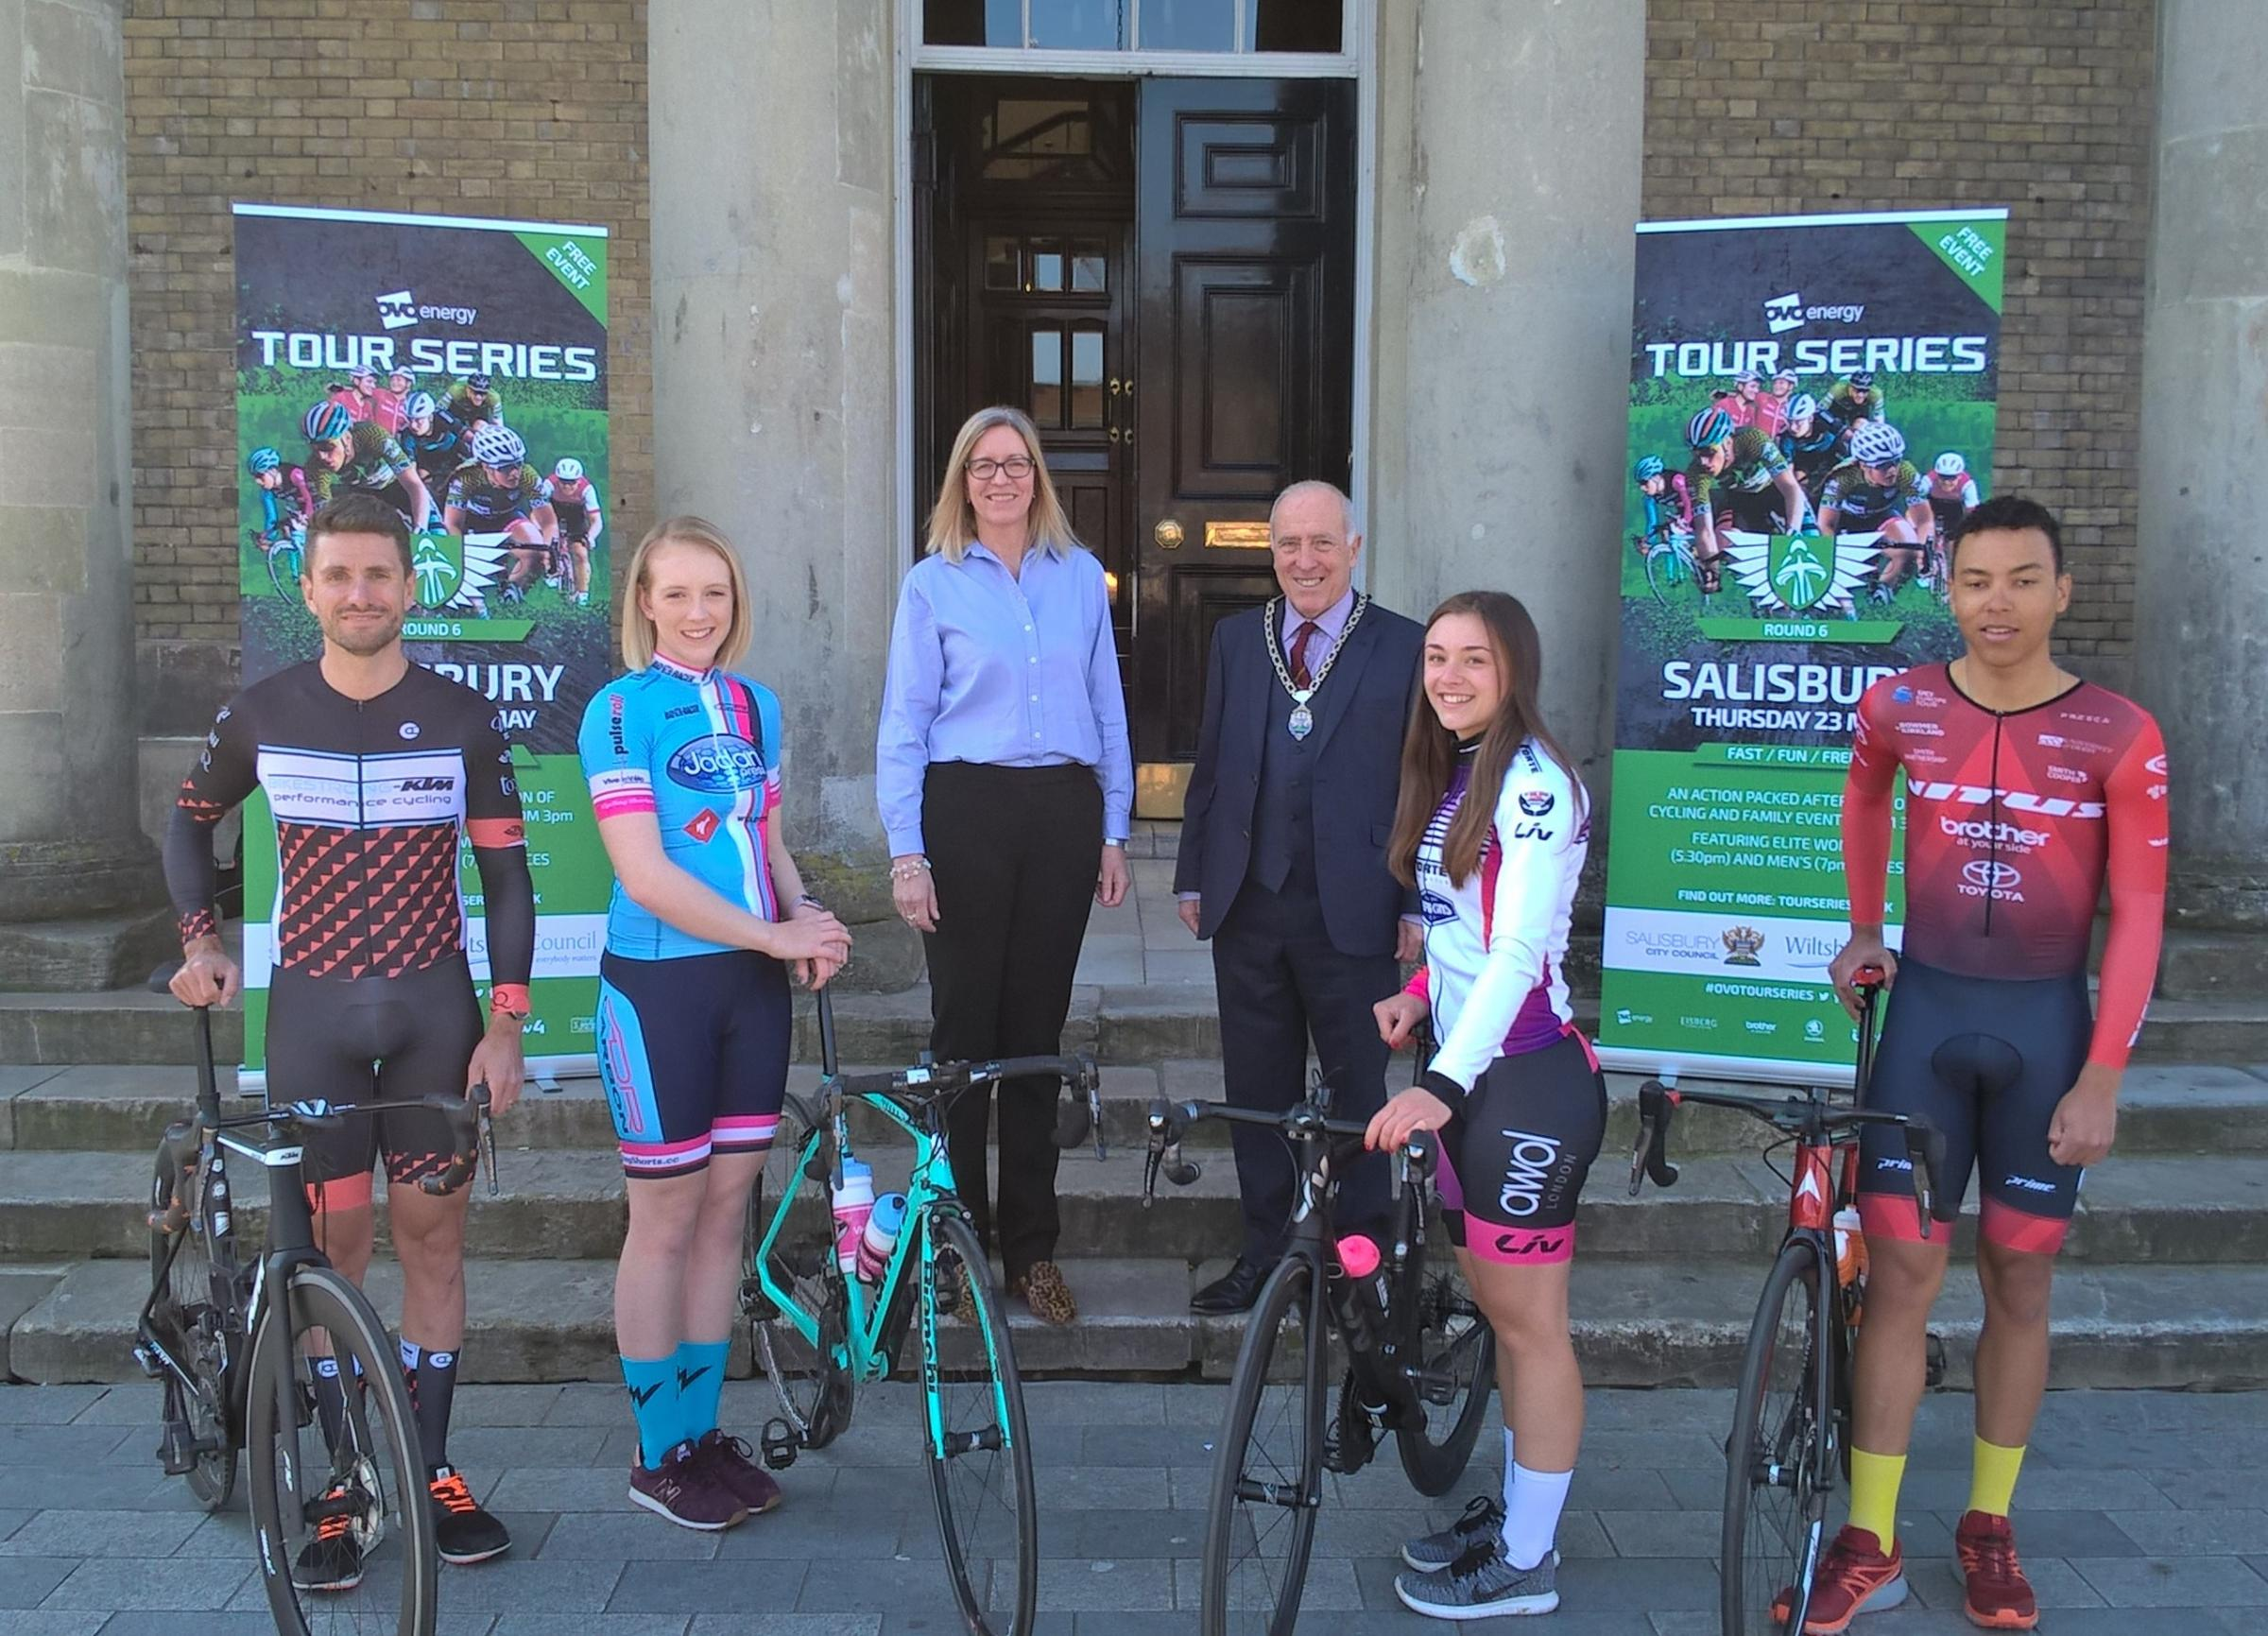 Tom Grigson, Bikestrong KTM; Amy King, Jadan-Weldtite Vive Le Velo; Pauline Church, Wiltshire Council cabinet member for South Wiltshire recovery; Cllr John Walsh, deputy mayor of Salisbury; Victoria Lovett, Liv AWOL SPOK'D; Red Walters, Vitus Pro C